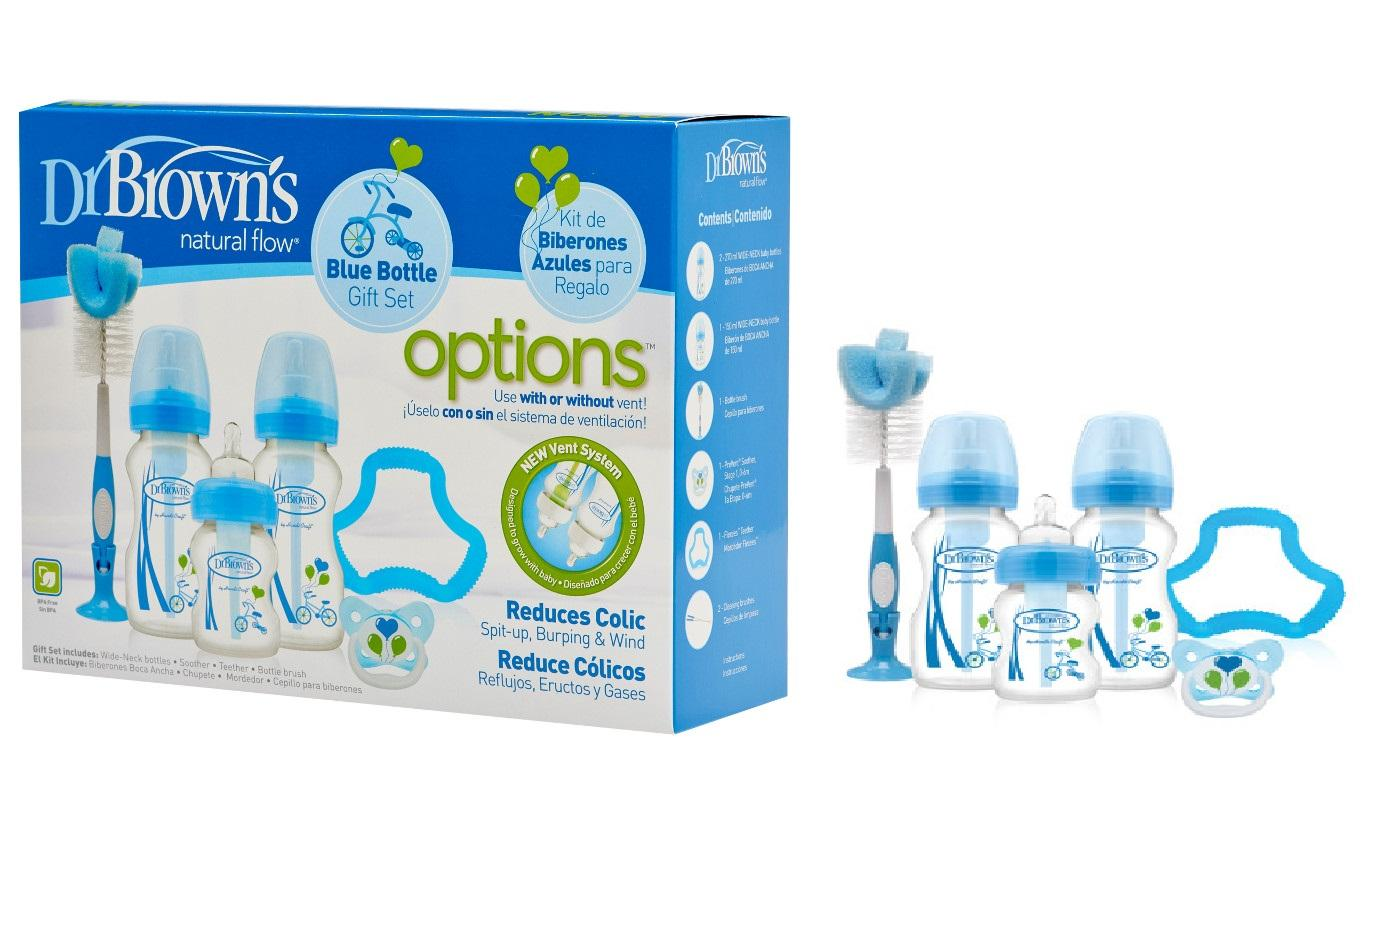 Baby Bottles For Sale Feeding Online Brands Prices Wide Neck Options Bottle Soother Gift Set Blue Pink Dr Browns